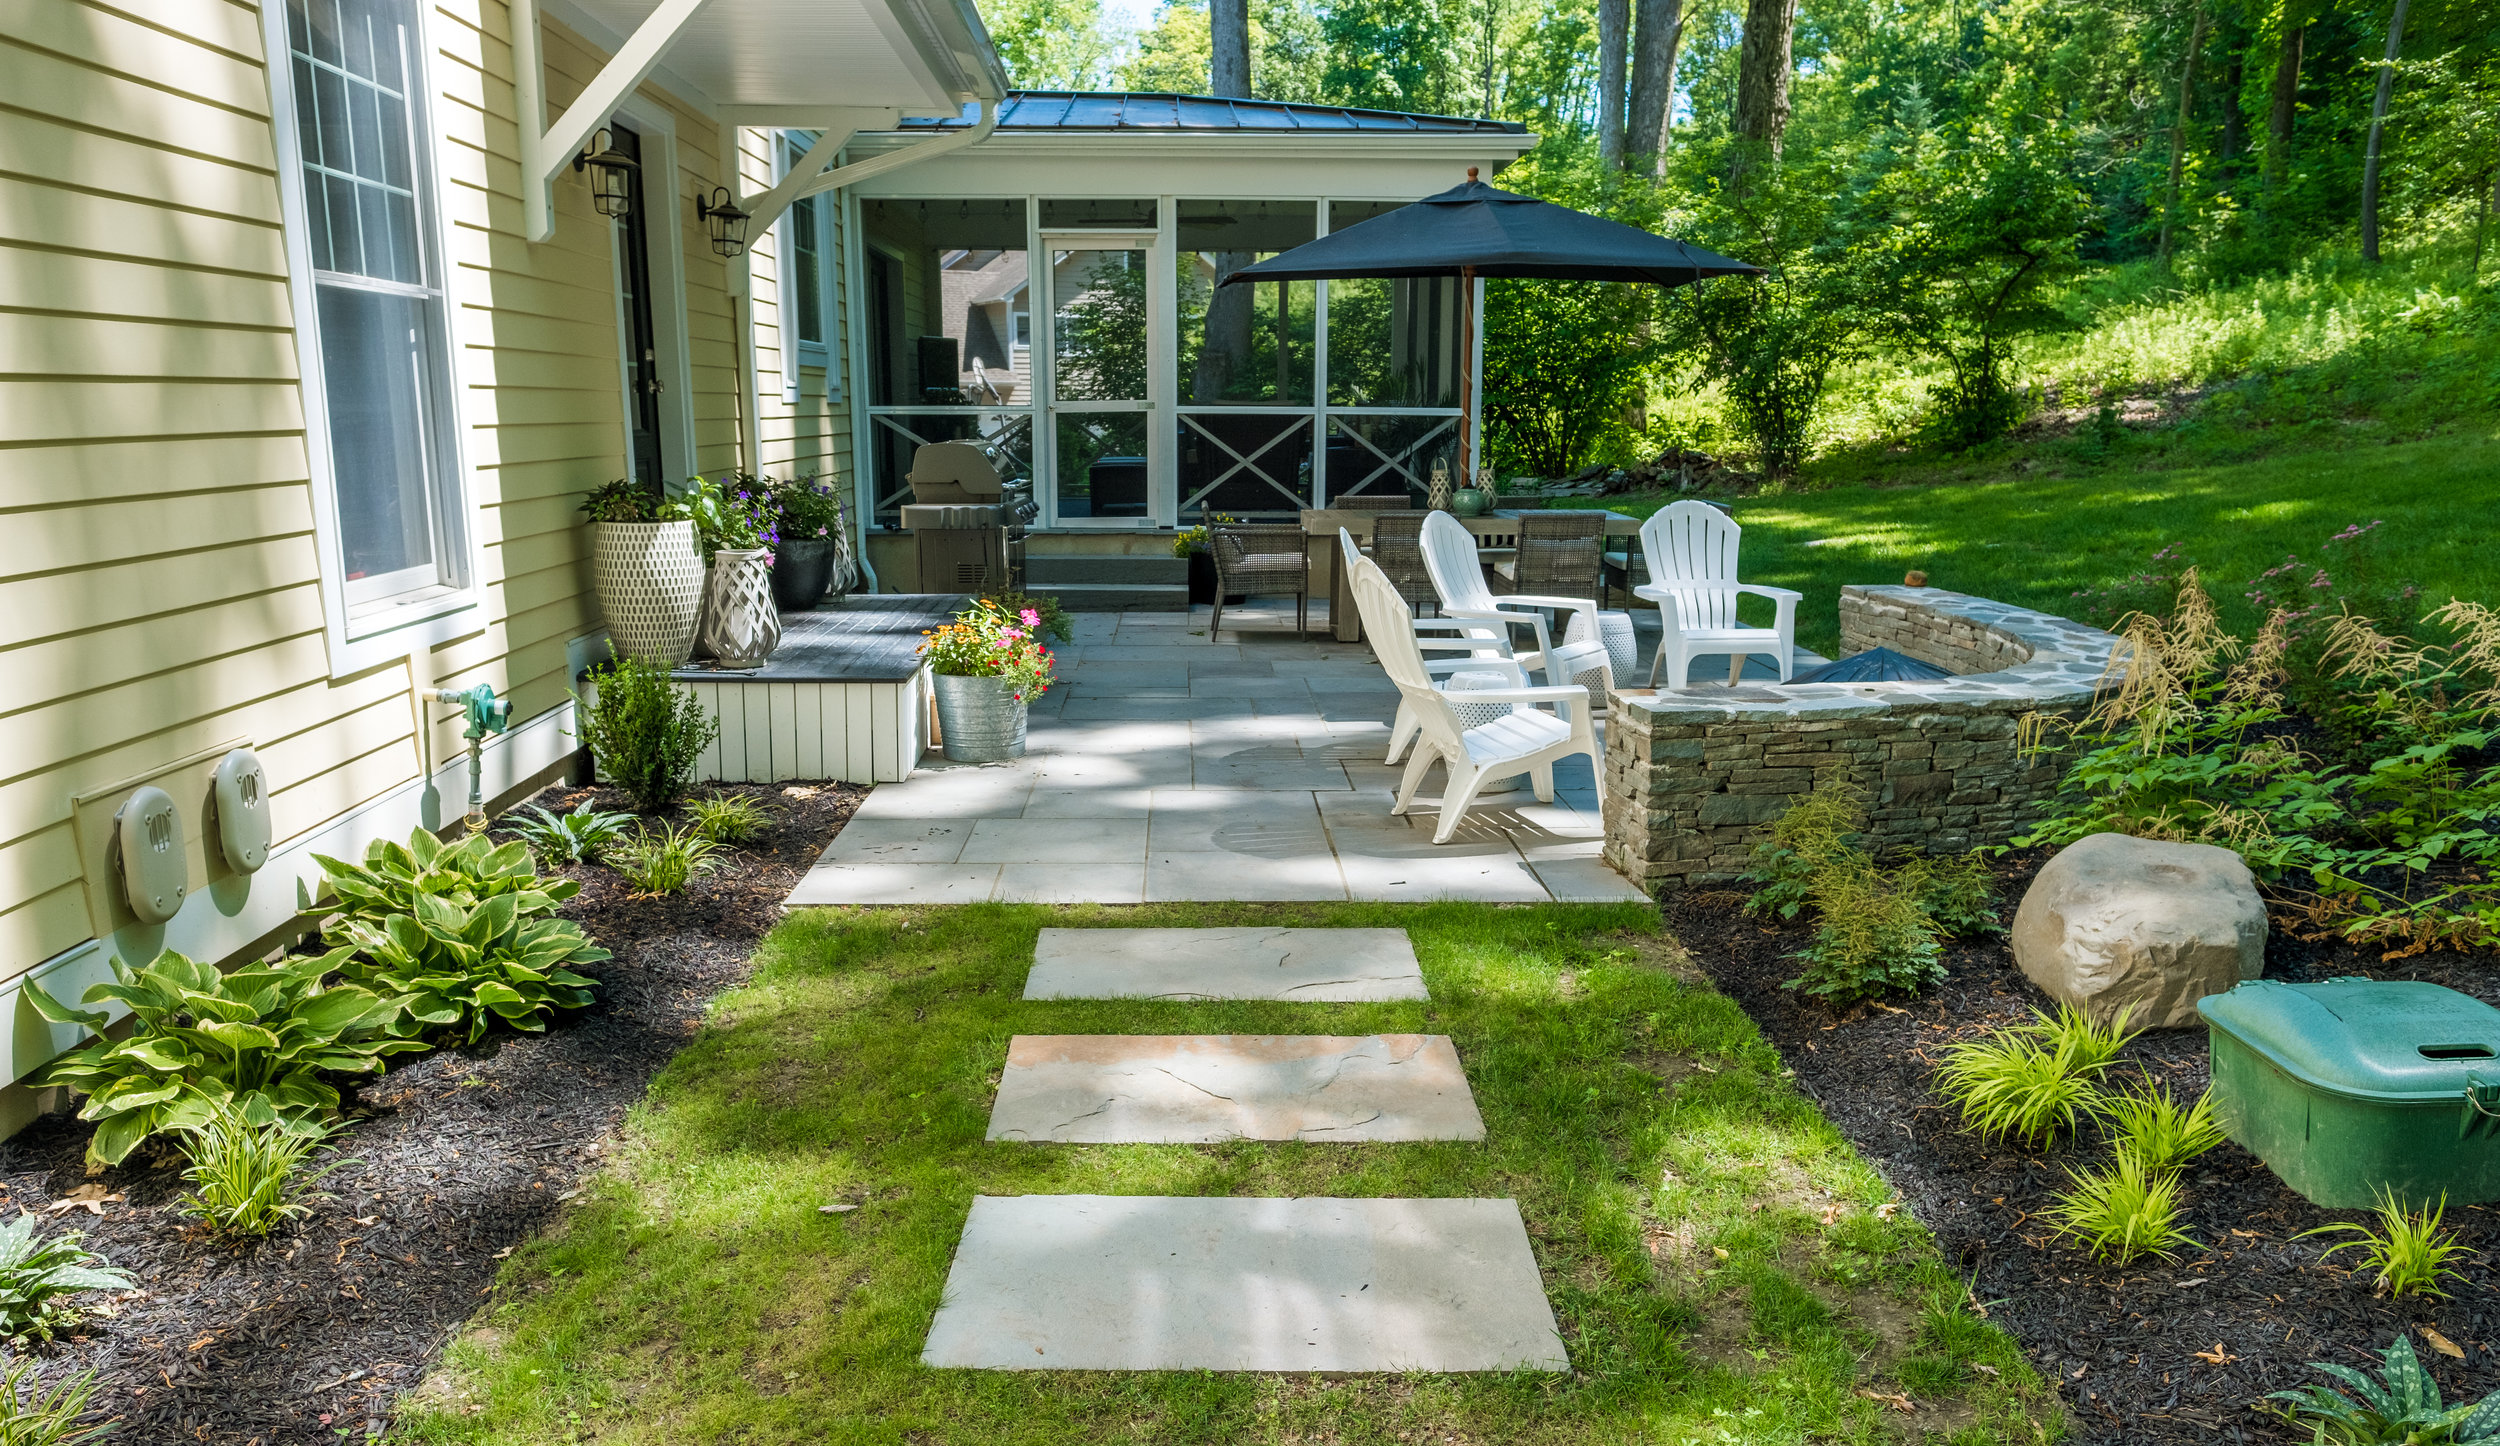 Outdoor Lighting Ideas To Make Your Patio Usable Year Round In Florida Ny Landworx Of Ny Landscape Design And Build Goshen Ny Hudson Valley Landscaping Company